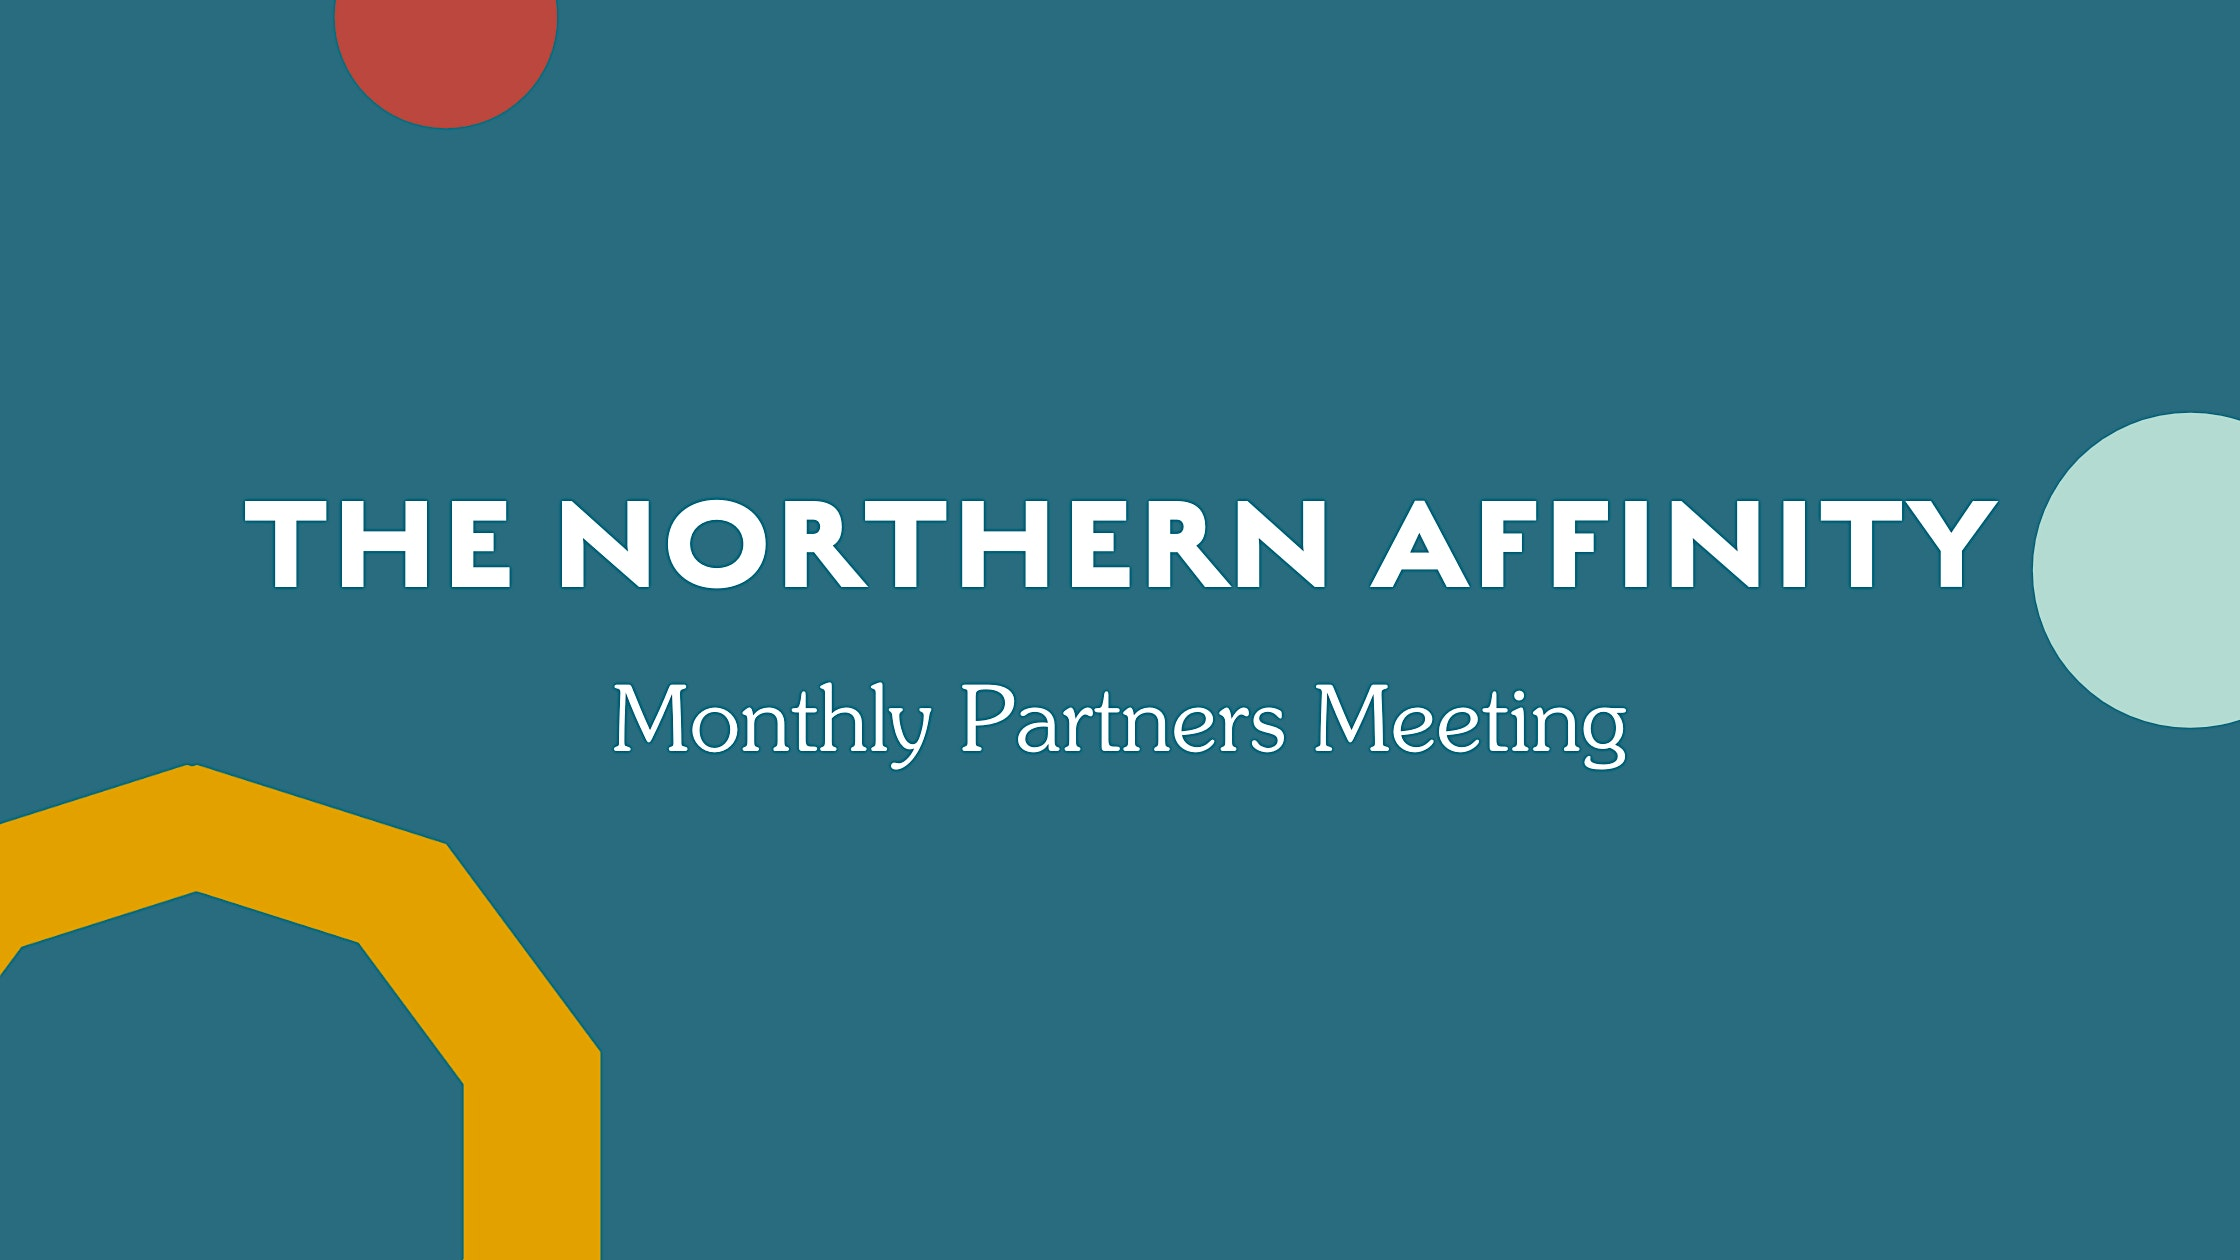 The Northern Affinity Partner Meeting